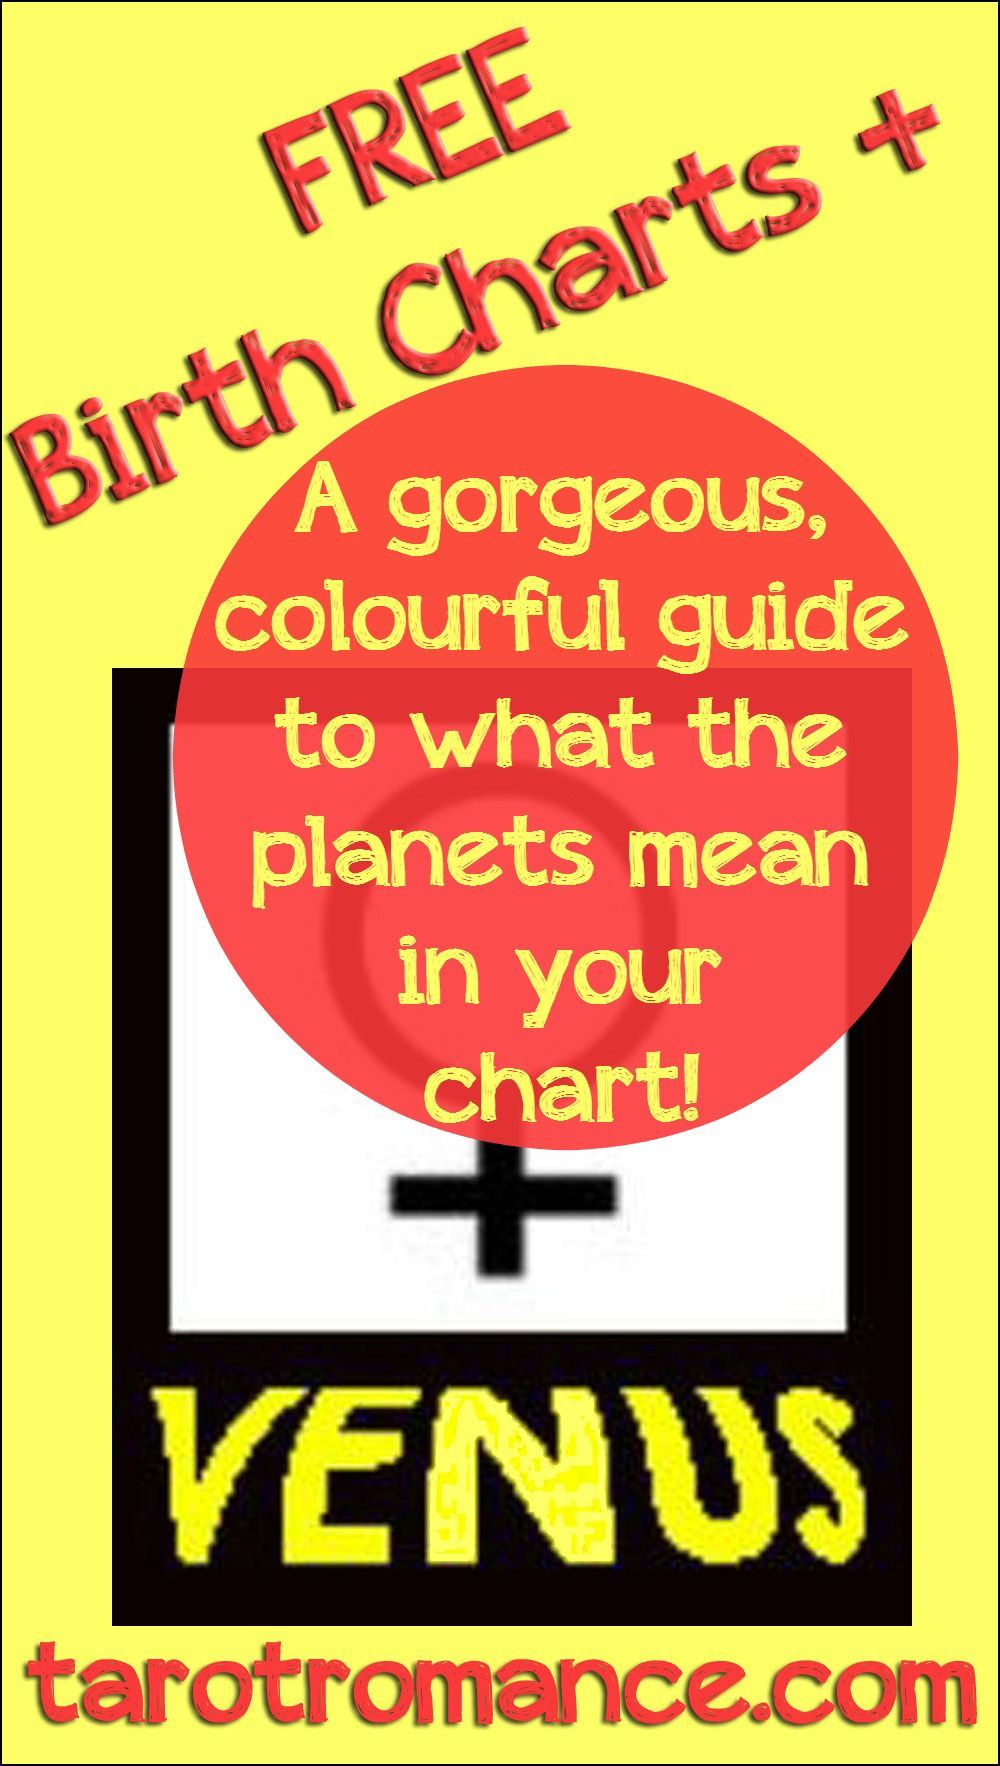 Grab Your Free Charts Plus Your Free Guide To What The Planets Mean